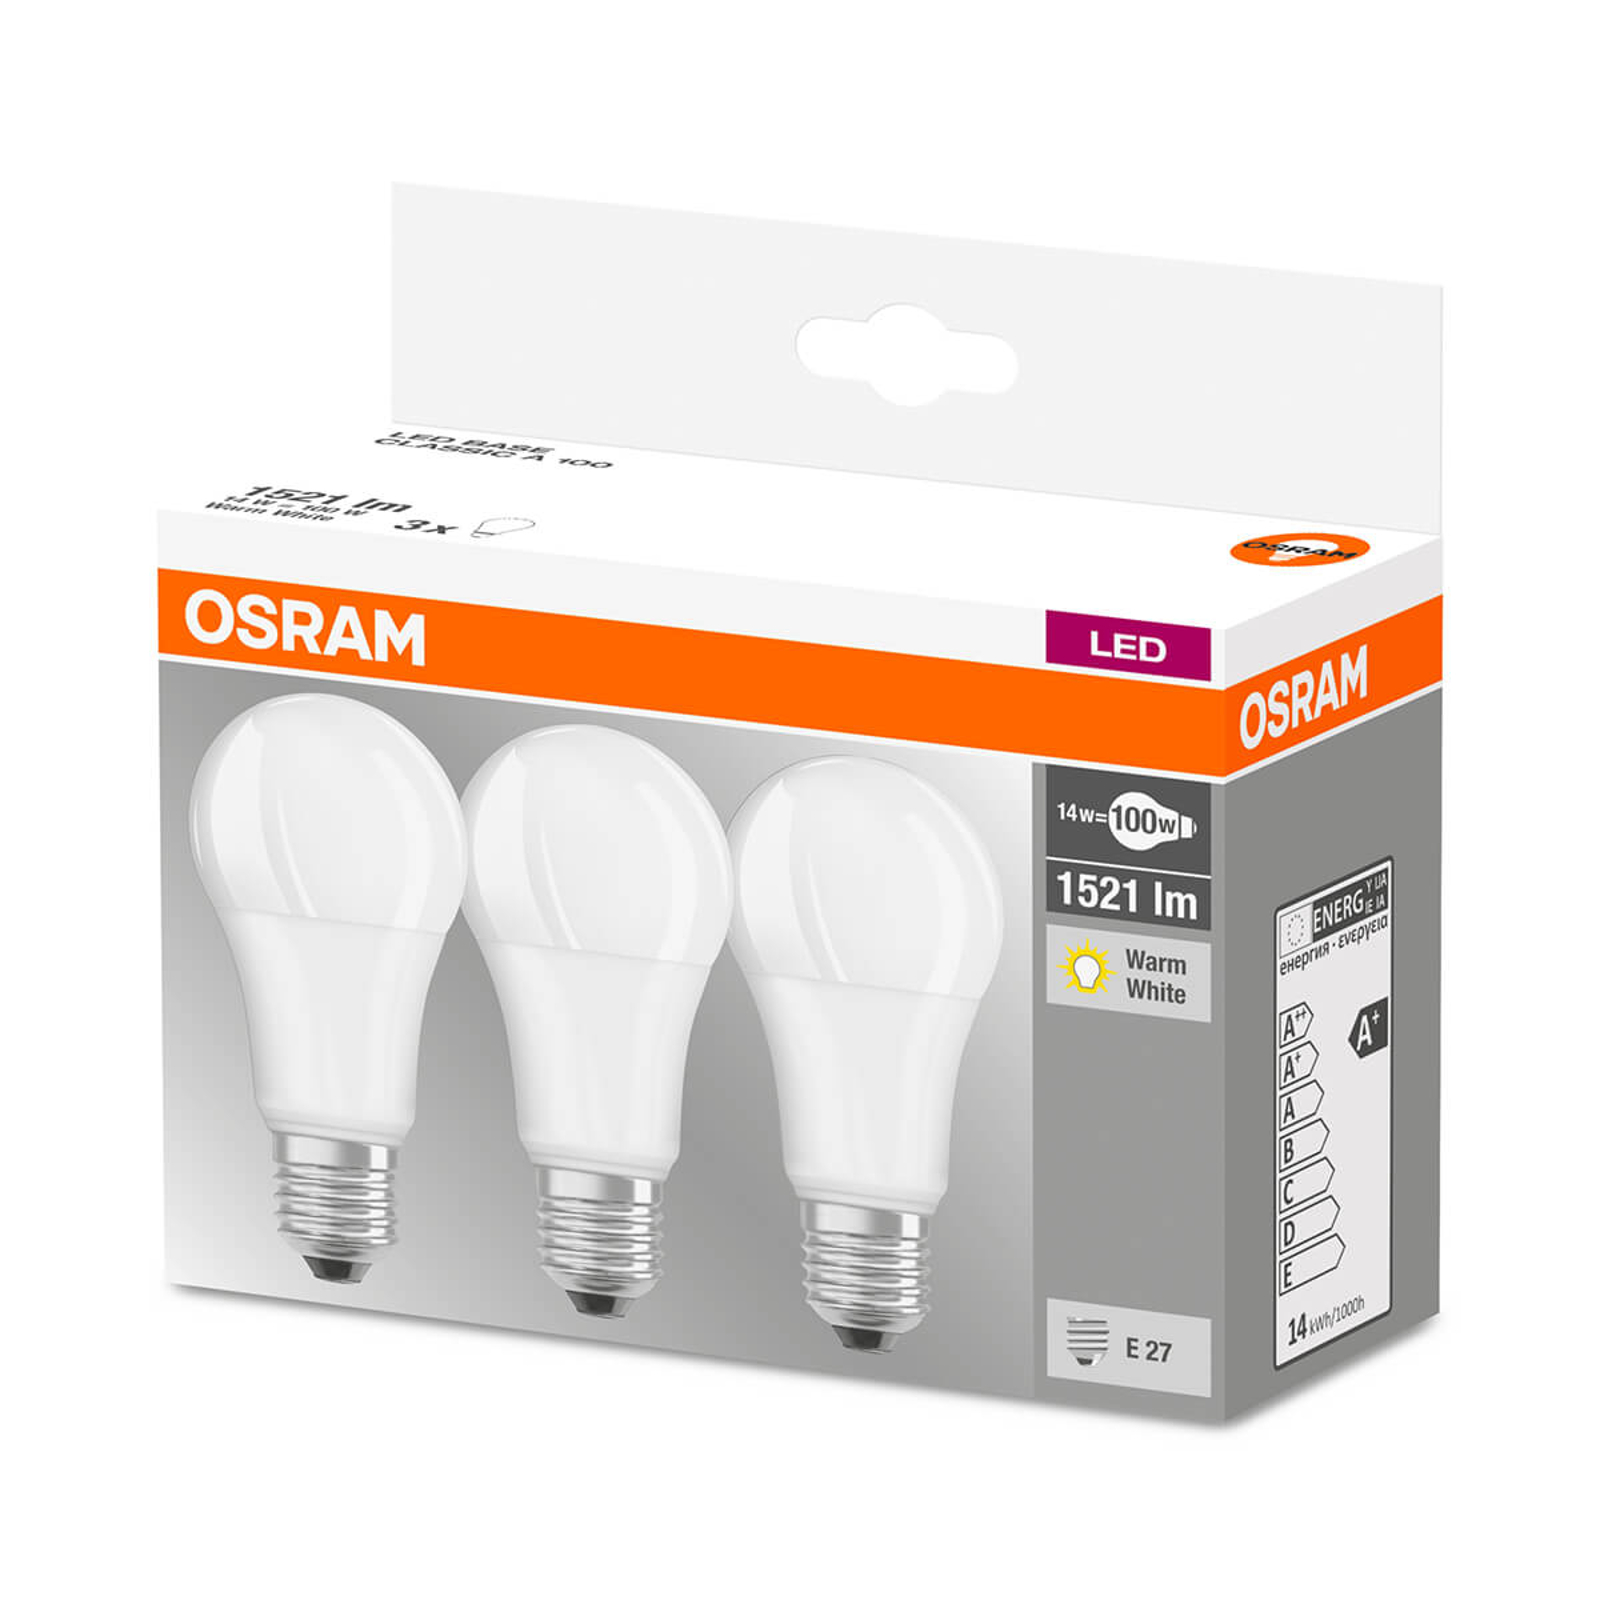 Lampadina LED E27 14W, bianco caldo, set da 3